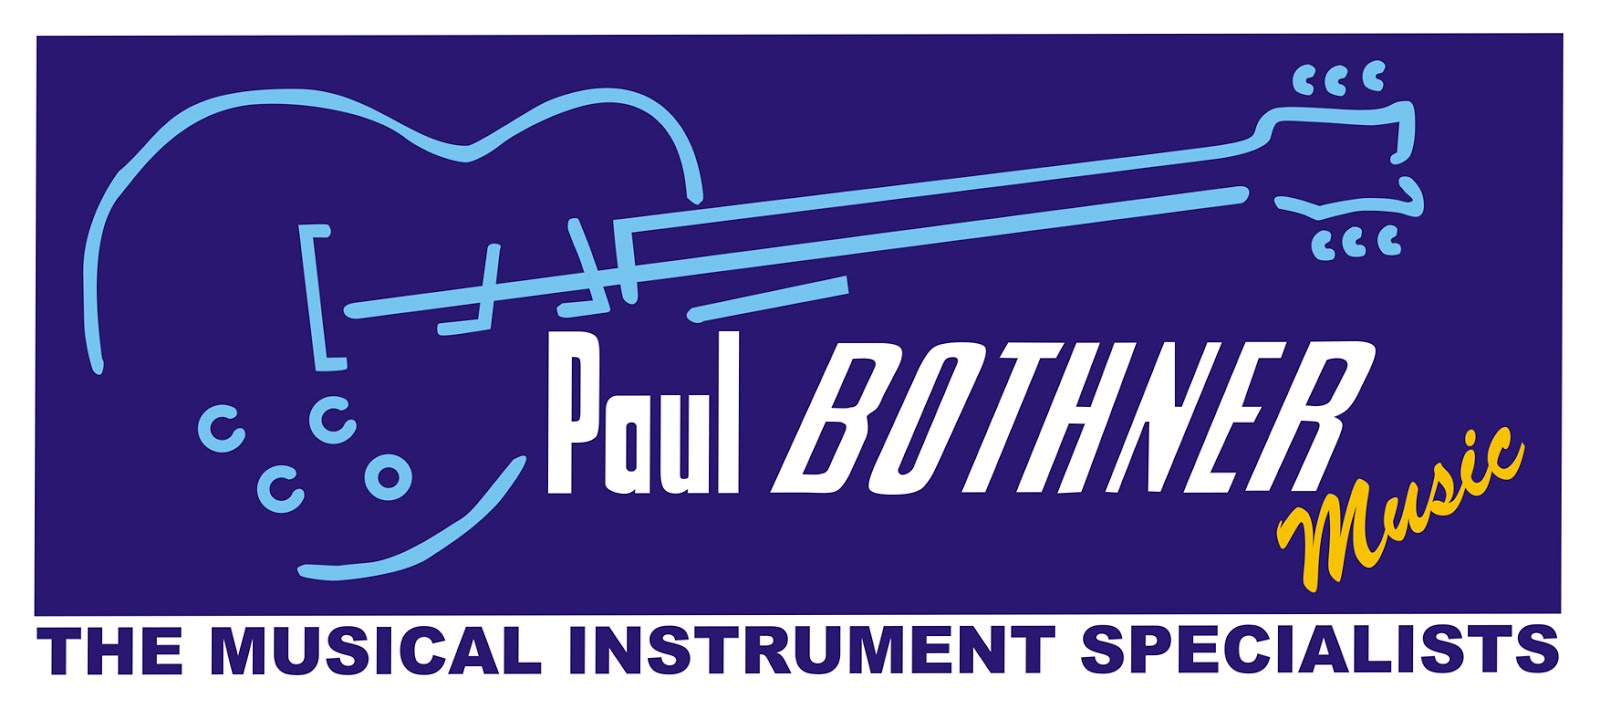 paul bothner music...